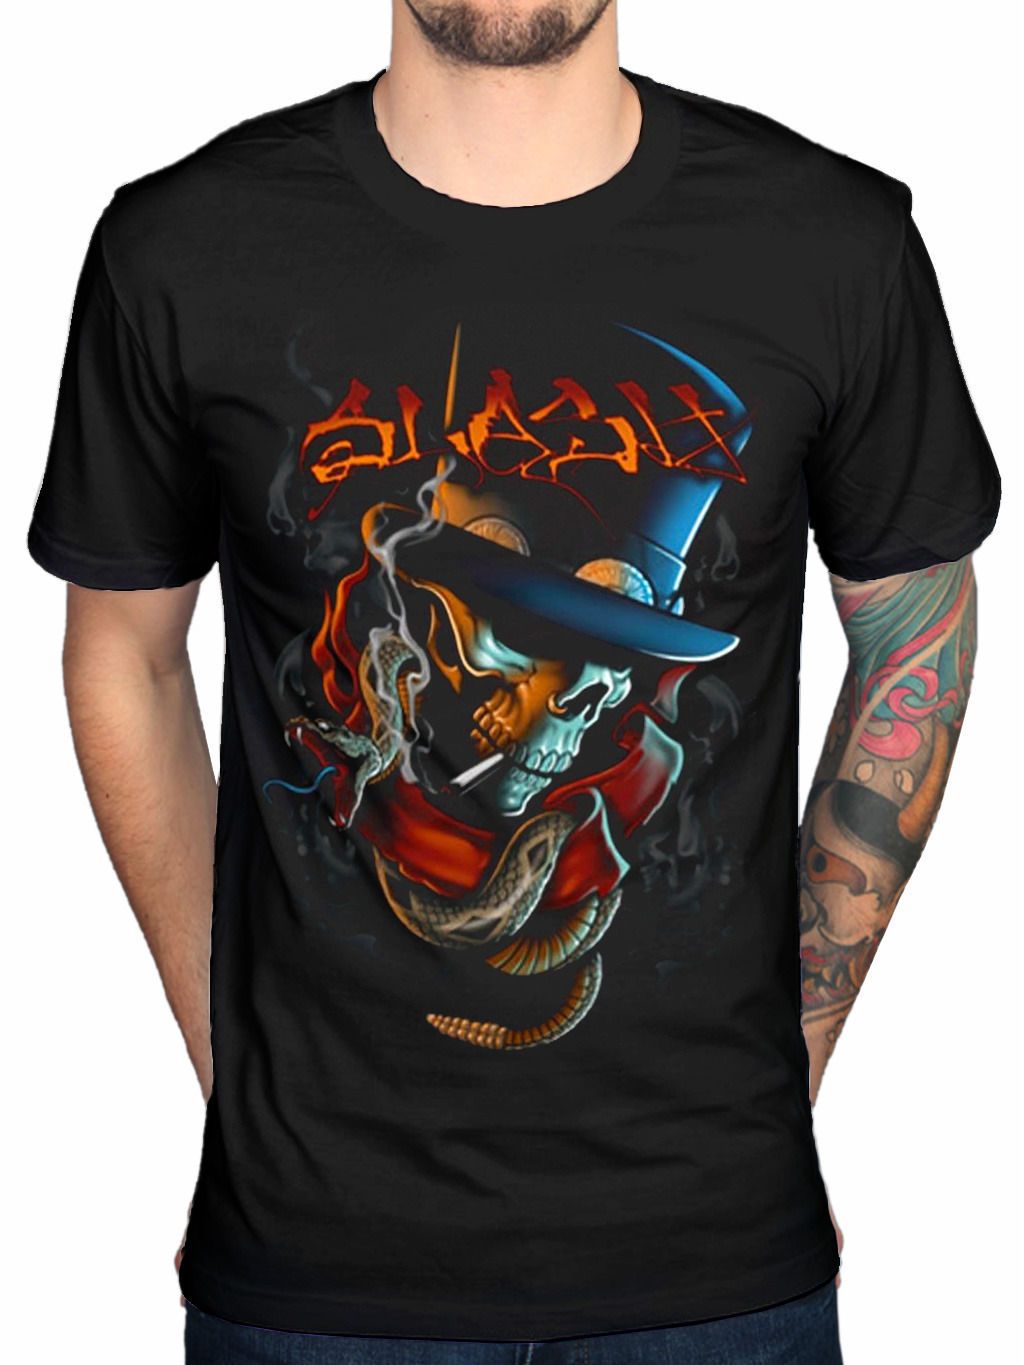 Black Cotton T-Shirt top tee Official Slash Smoker T-Shirt World On Fire Apocalyptic Love Made In Stoke Rock